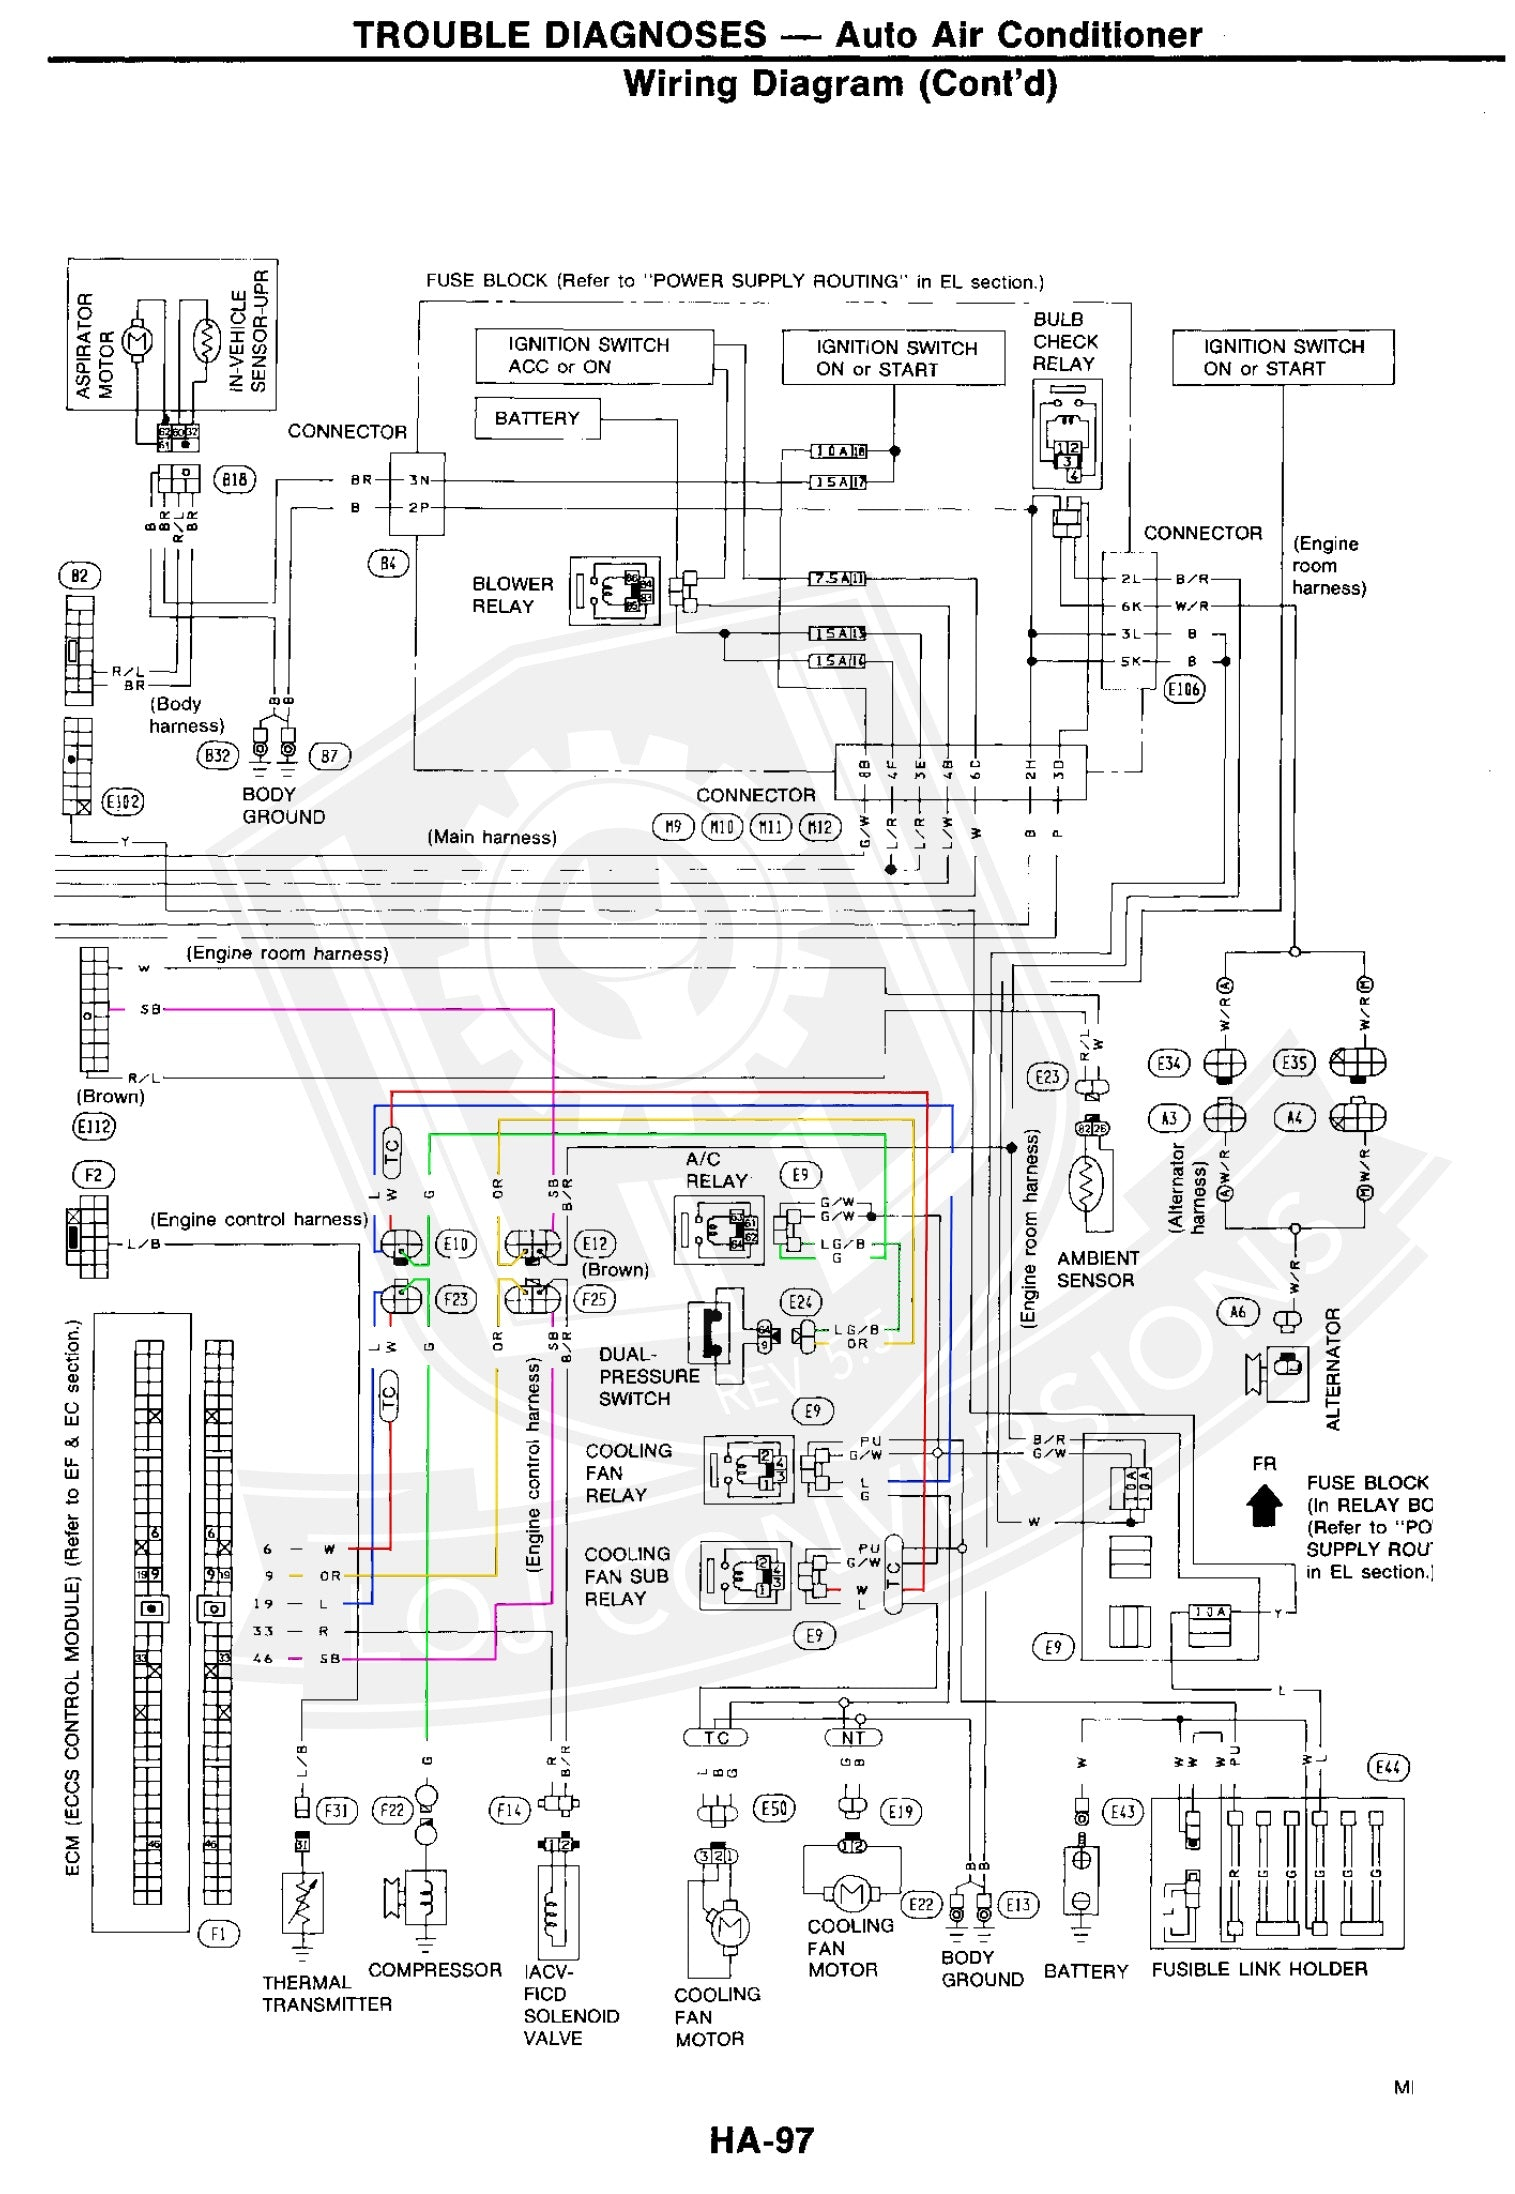 2002 Avalanche Ac Wiring Diagram Diy Enthusiasts Diagrams Chevy Fuse Harness For 1992 300zx Turbo Automotive U2022 Rh Nfluencer Co Parts A 2005